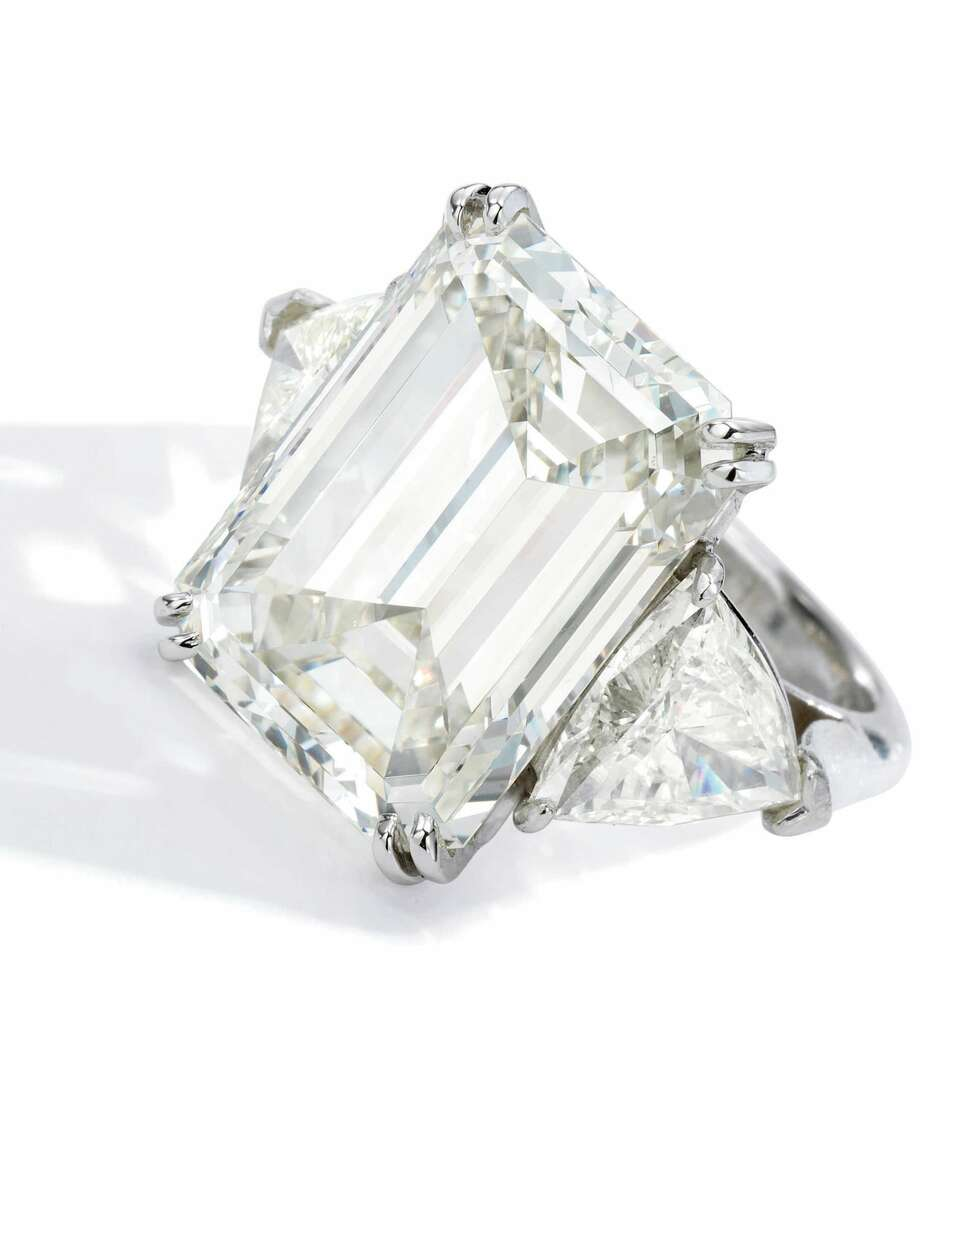 Marylou Whitney's 21.26 carat diamond ring is estimated to be sold between $250,000 to $350,000 at Sotheby's in the spring.